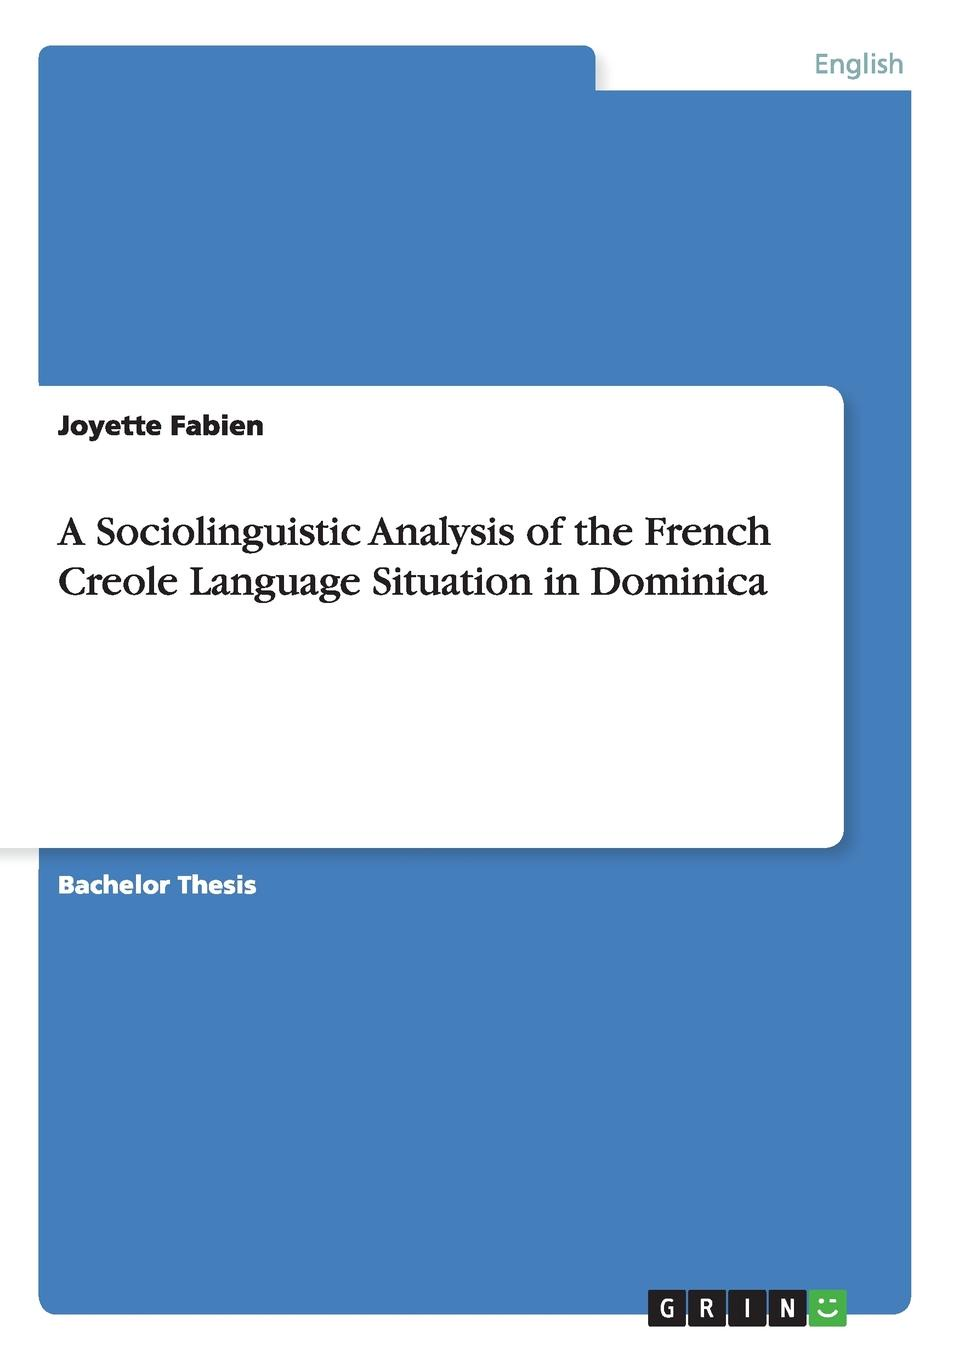 все цены на Joyette Fabien A Sociolinguistic Analysis of the French Creole Language Situation in Dominica онлайн